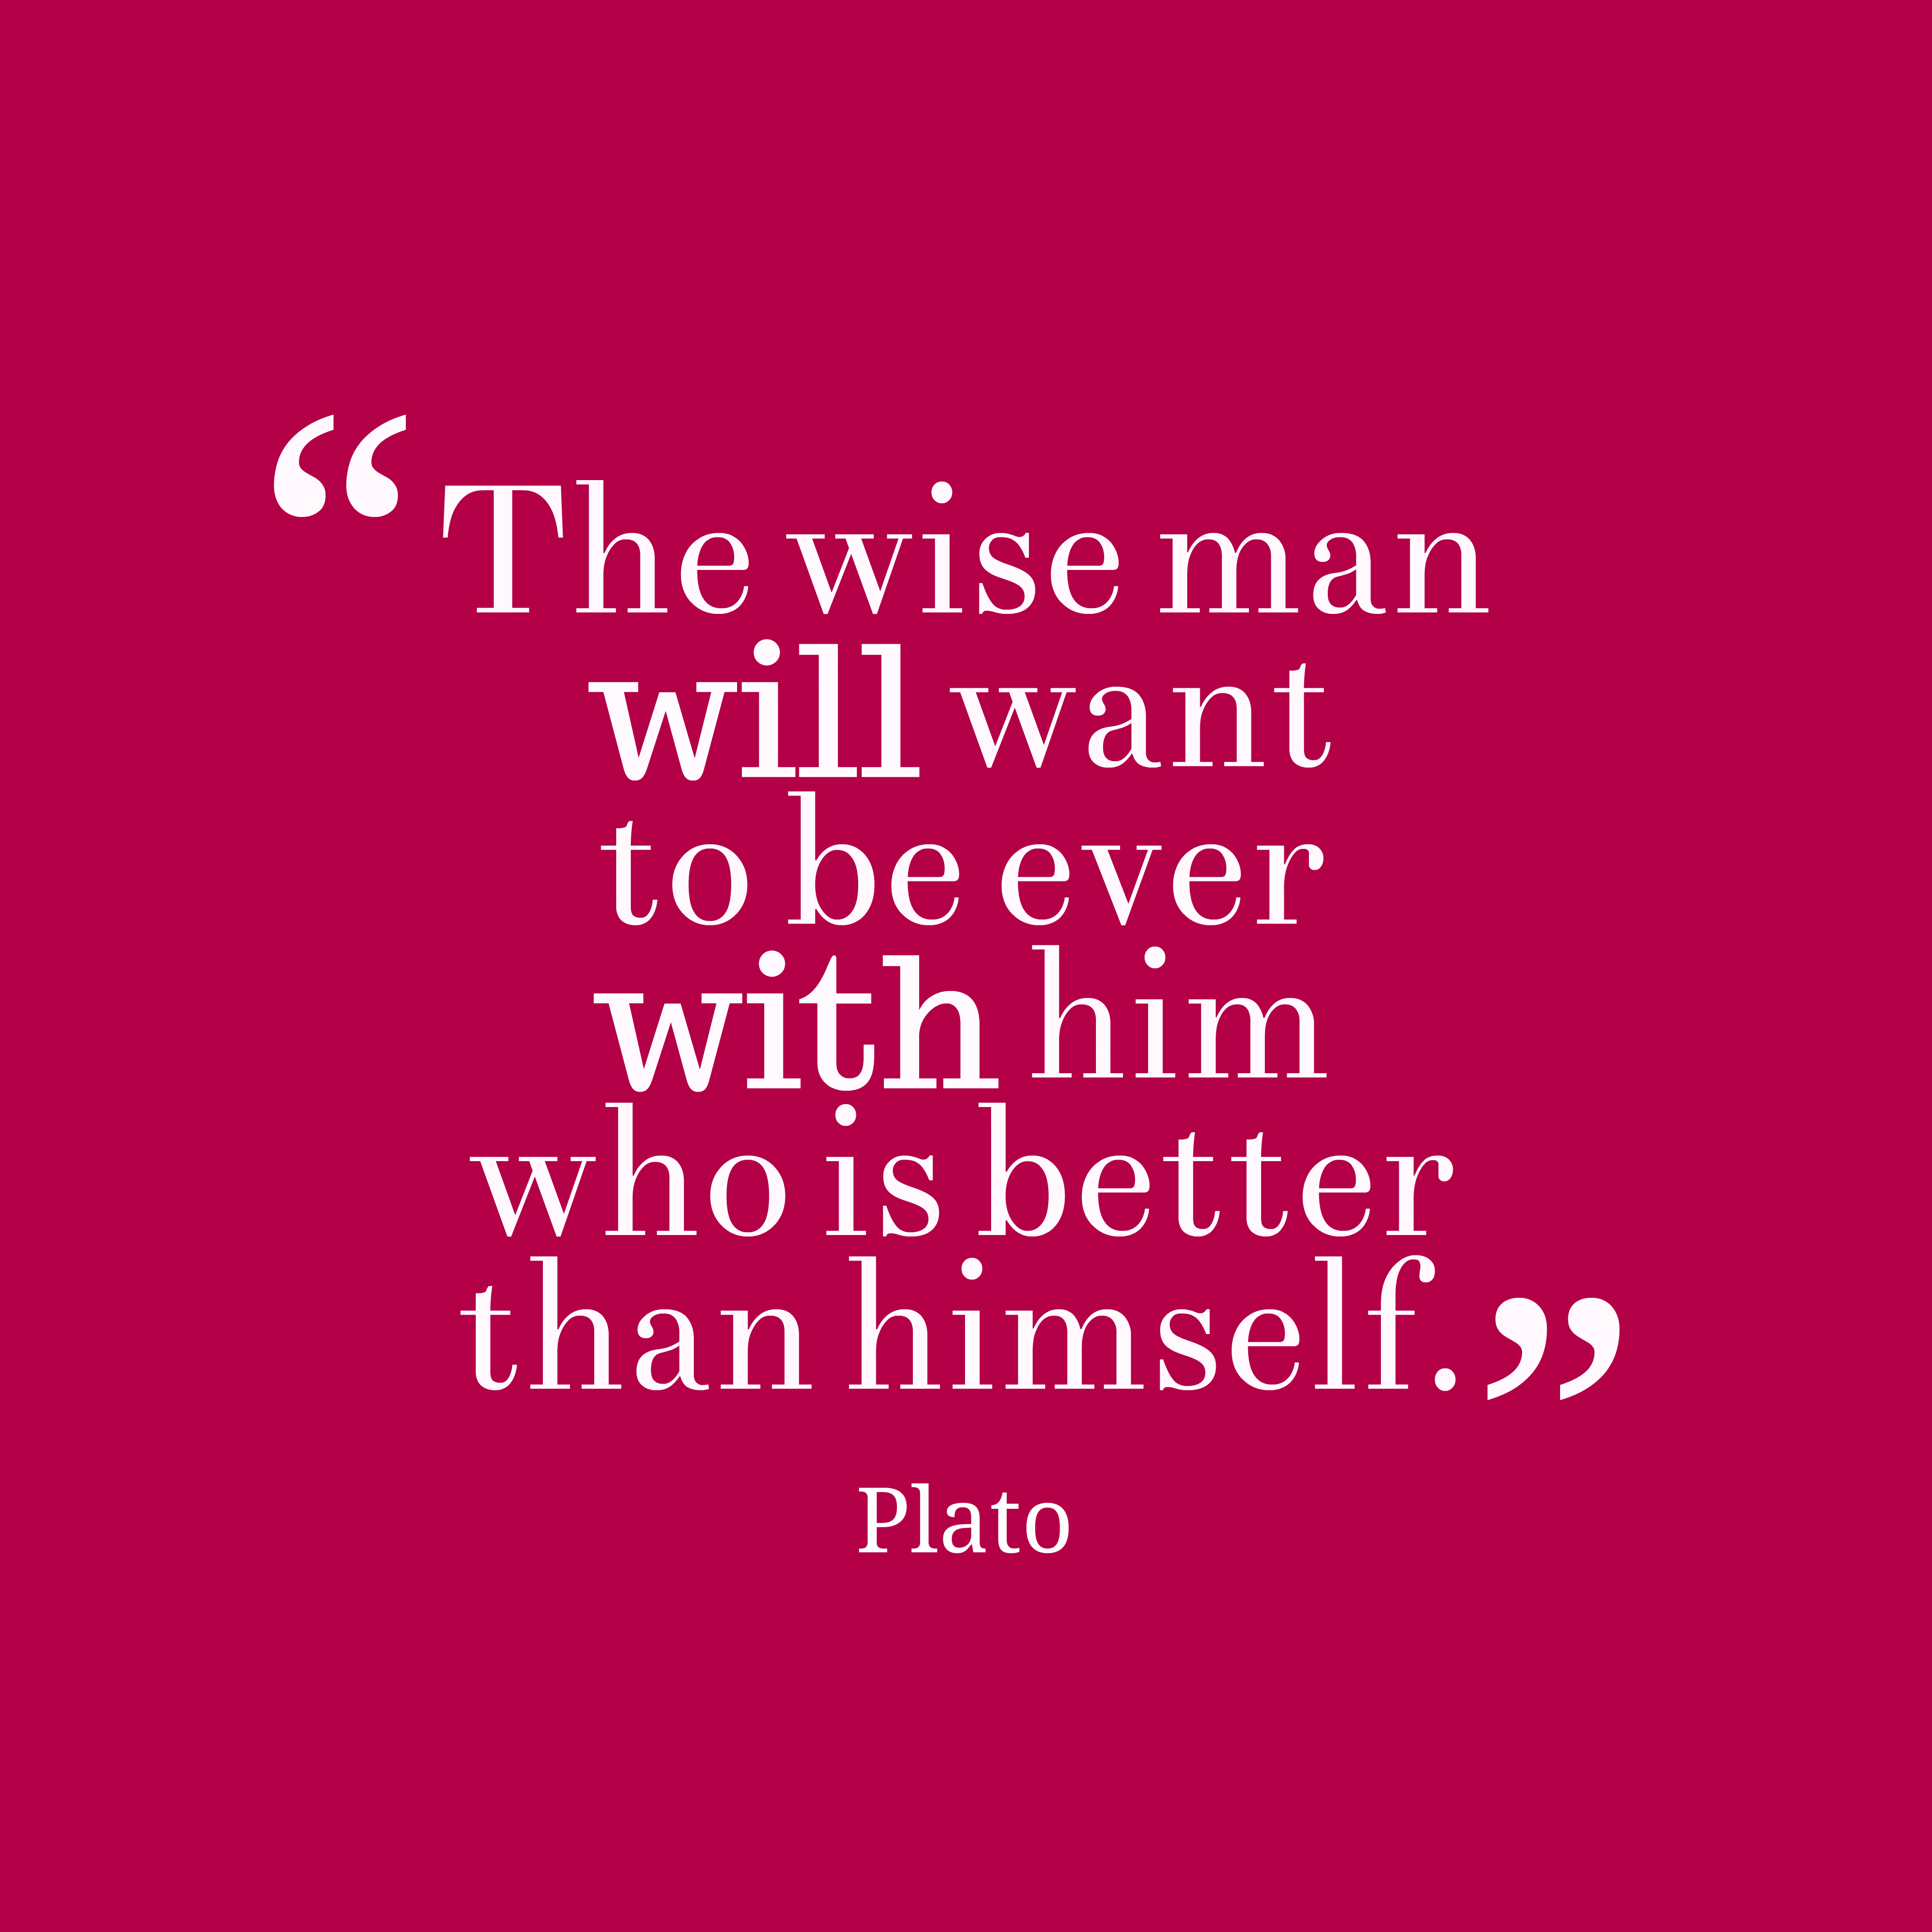 Quotes image of The wise man will want to be ever with him who is better than himself.